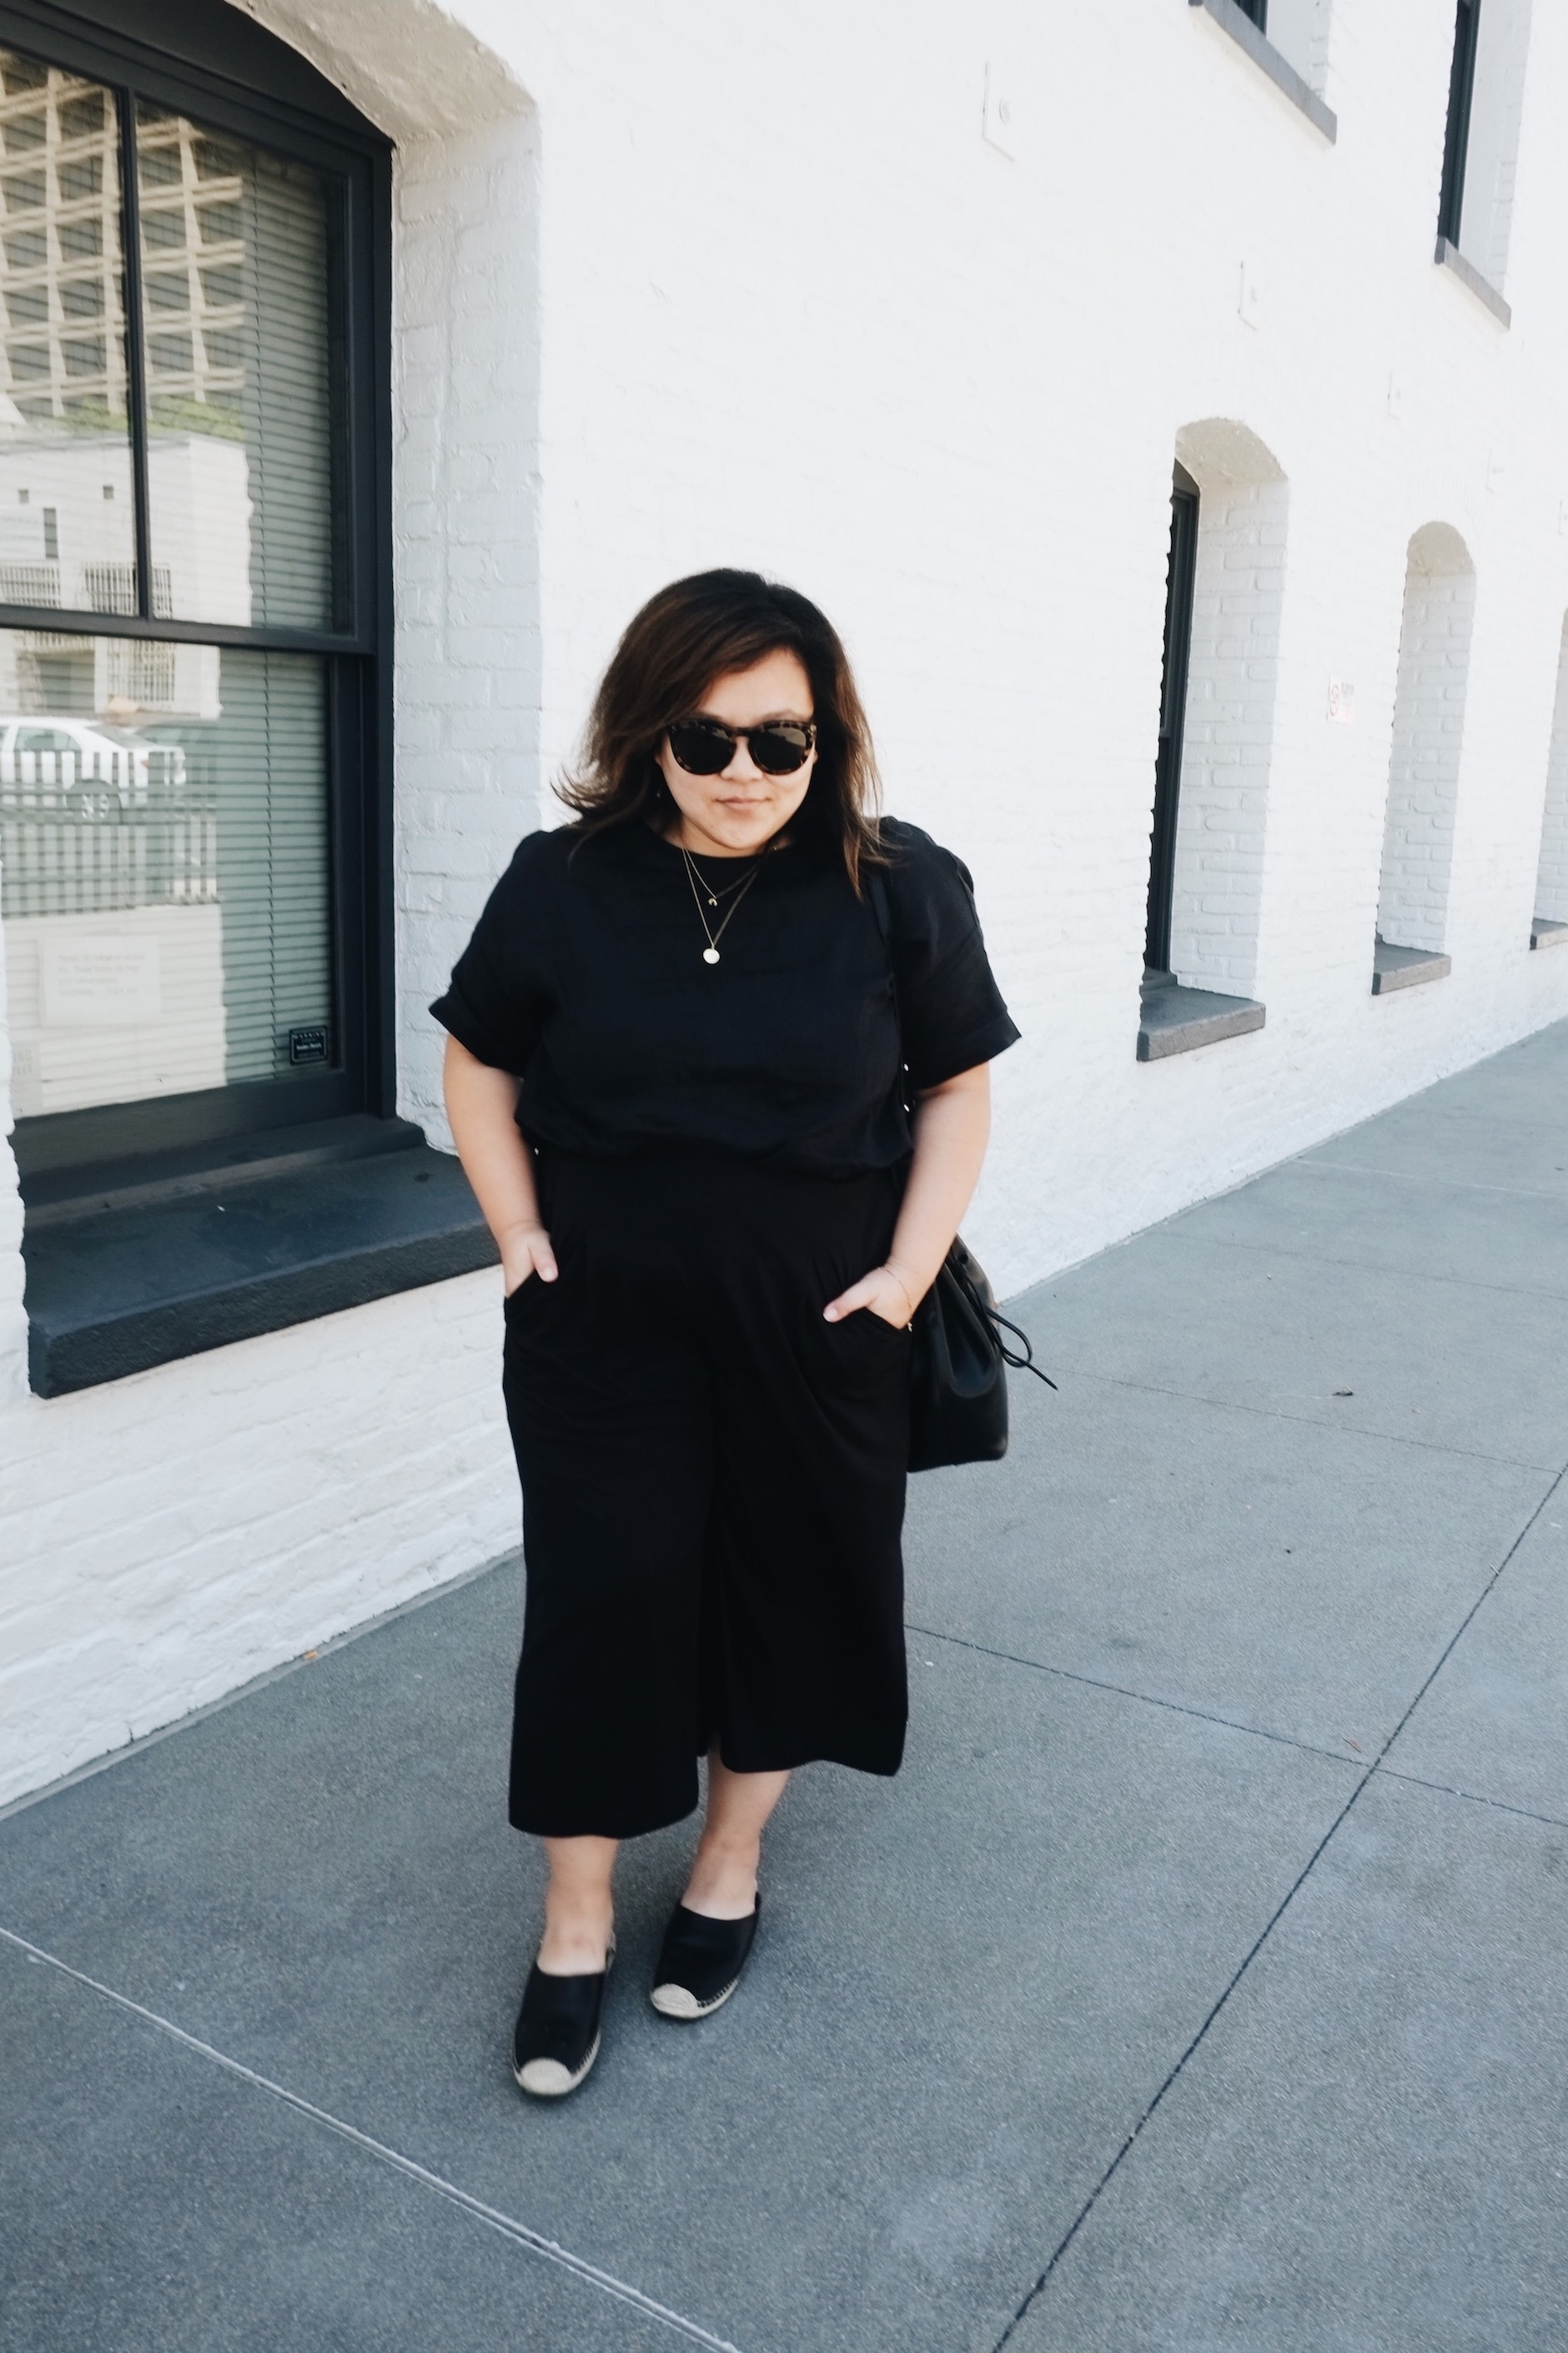 Black on black outfit  // A Week Of Minimalist Uniform Outfits With Jasmine Hwang From The Pleb Life on The Good Trade